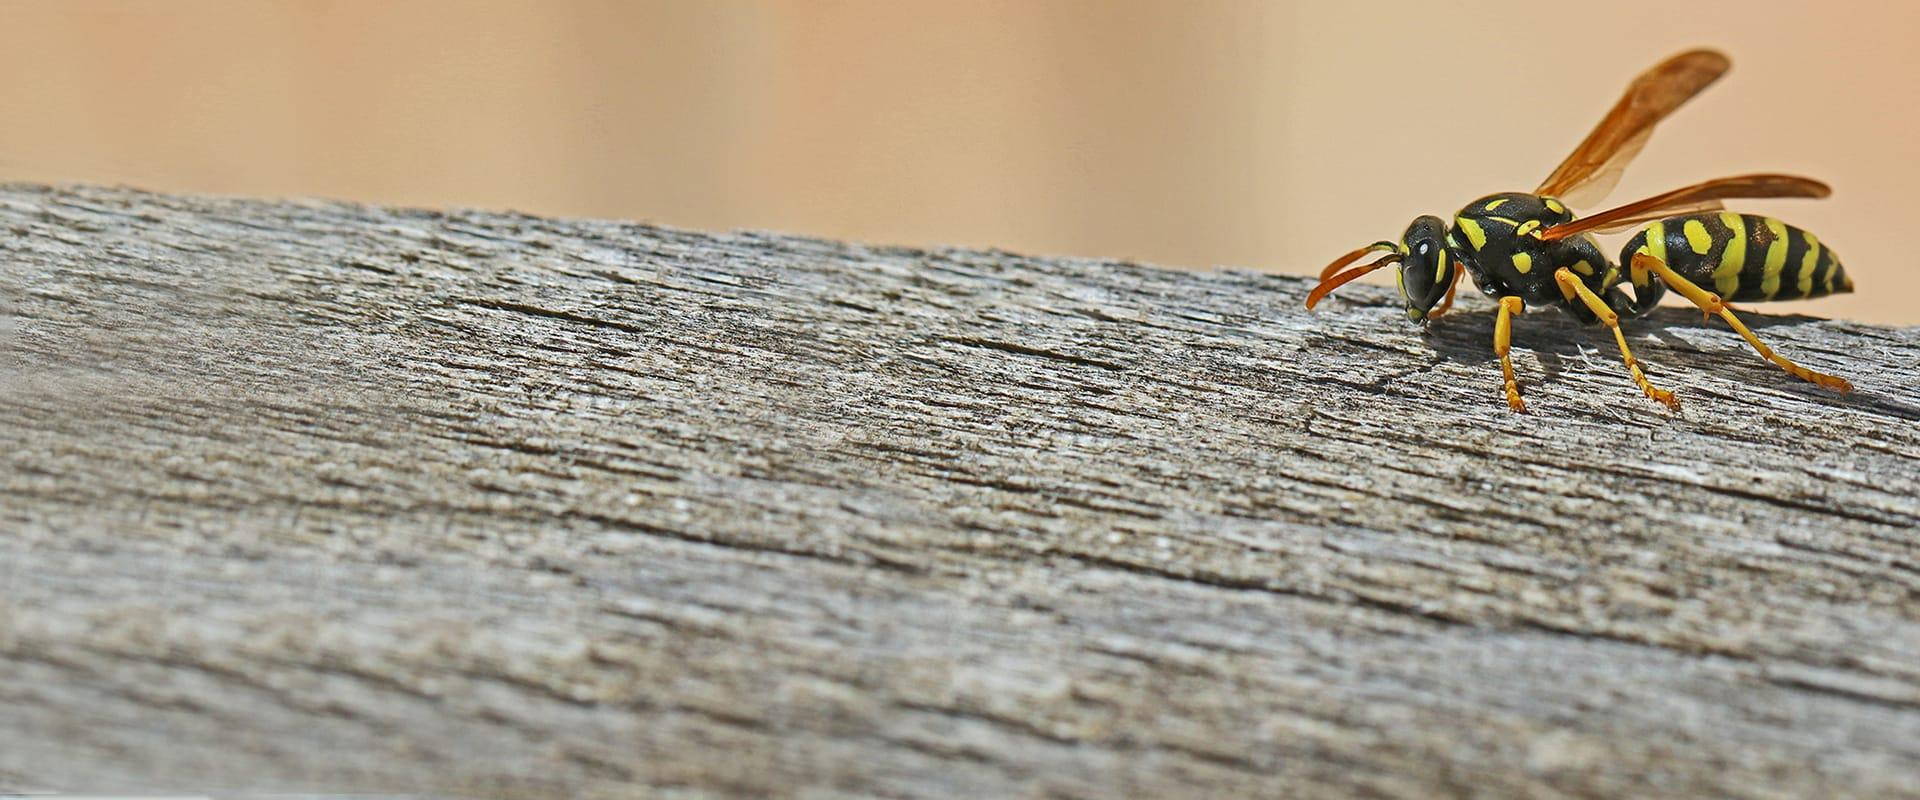 a wasp crawling on a wooden fence in mckinney texas